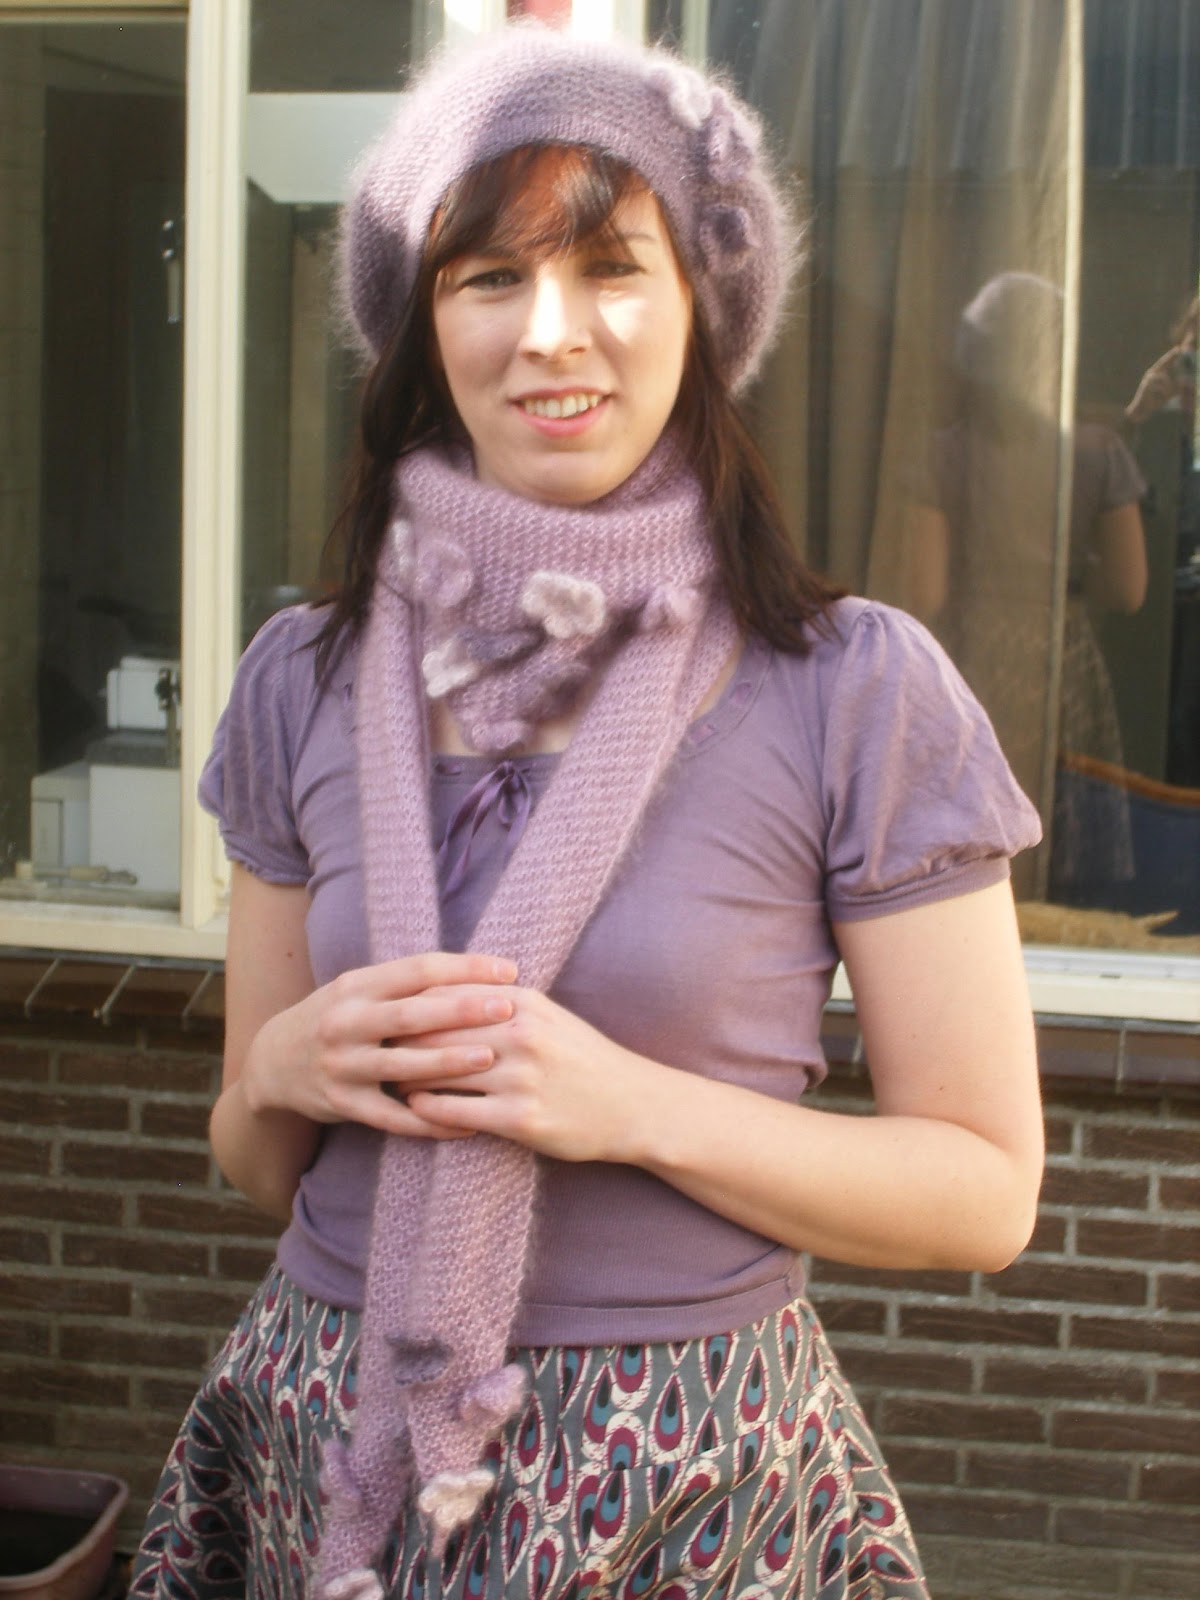 Beret and scarf made by Anthea